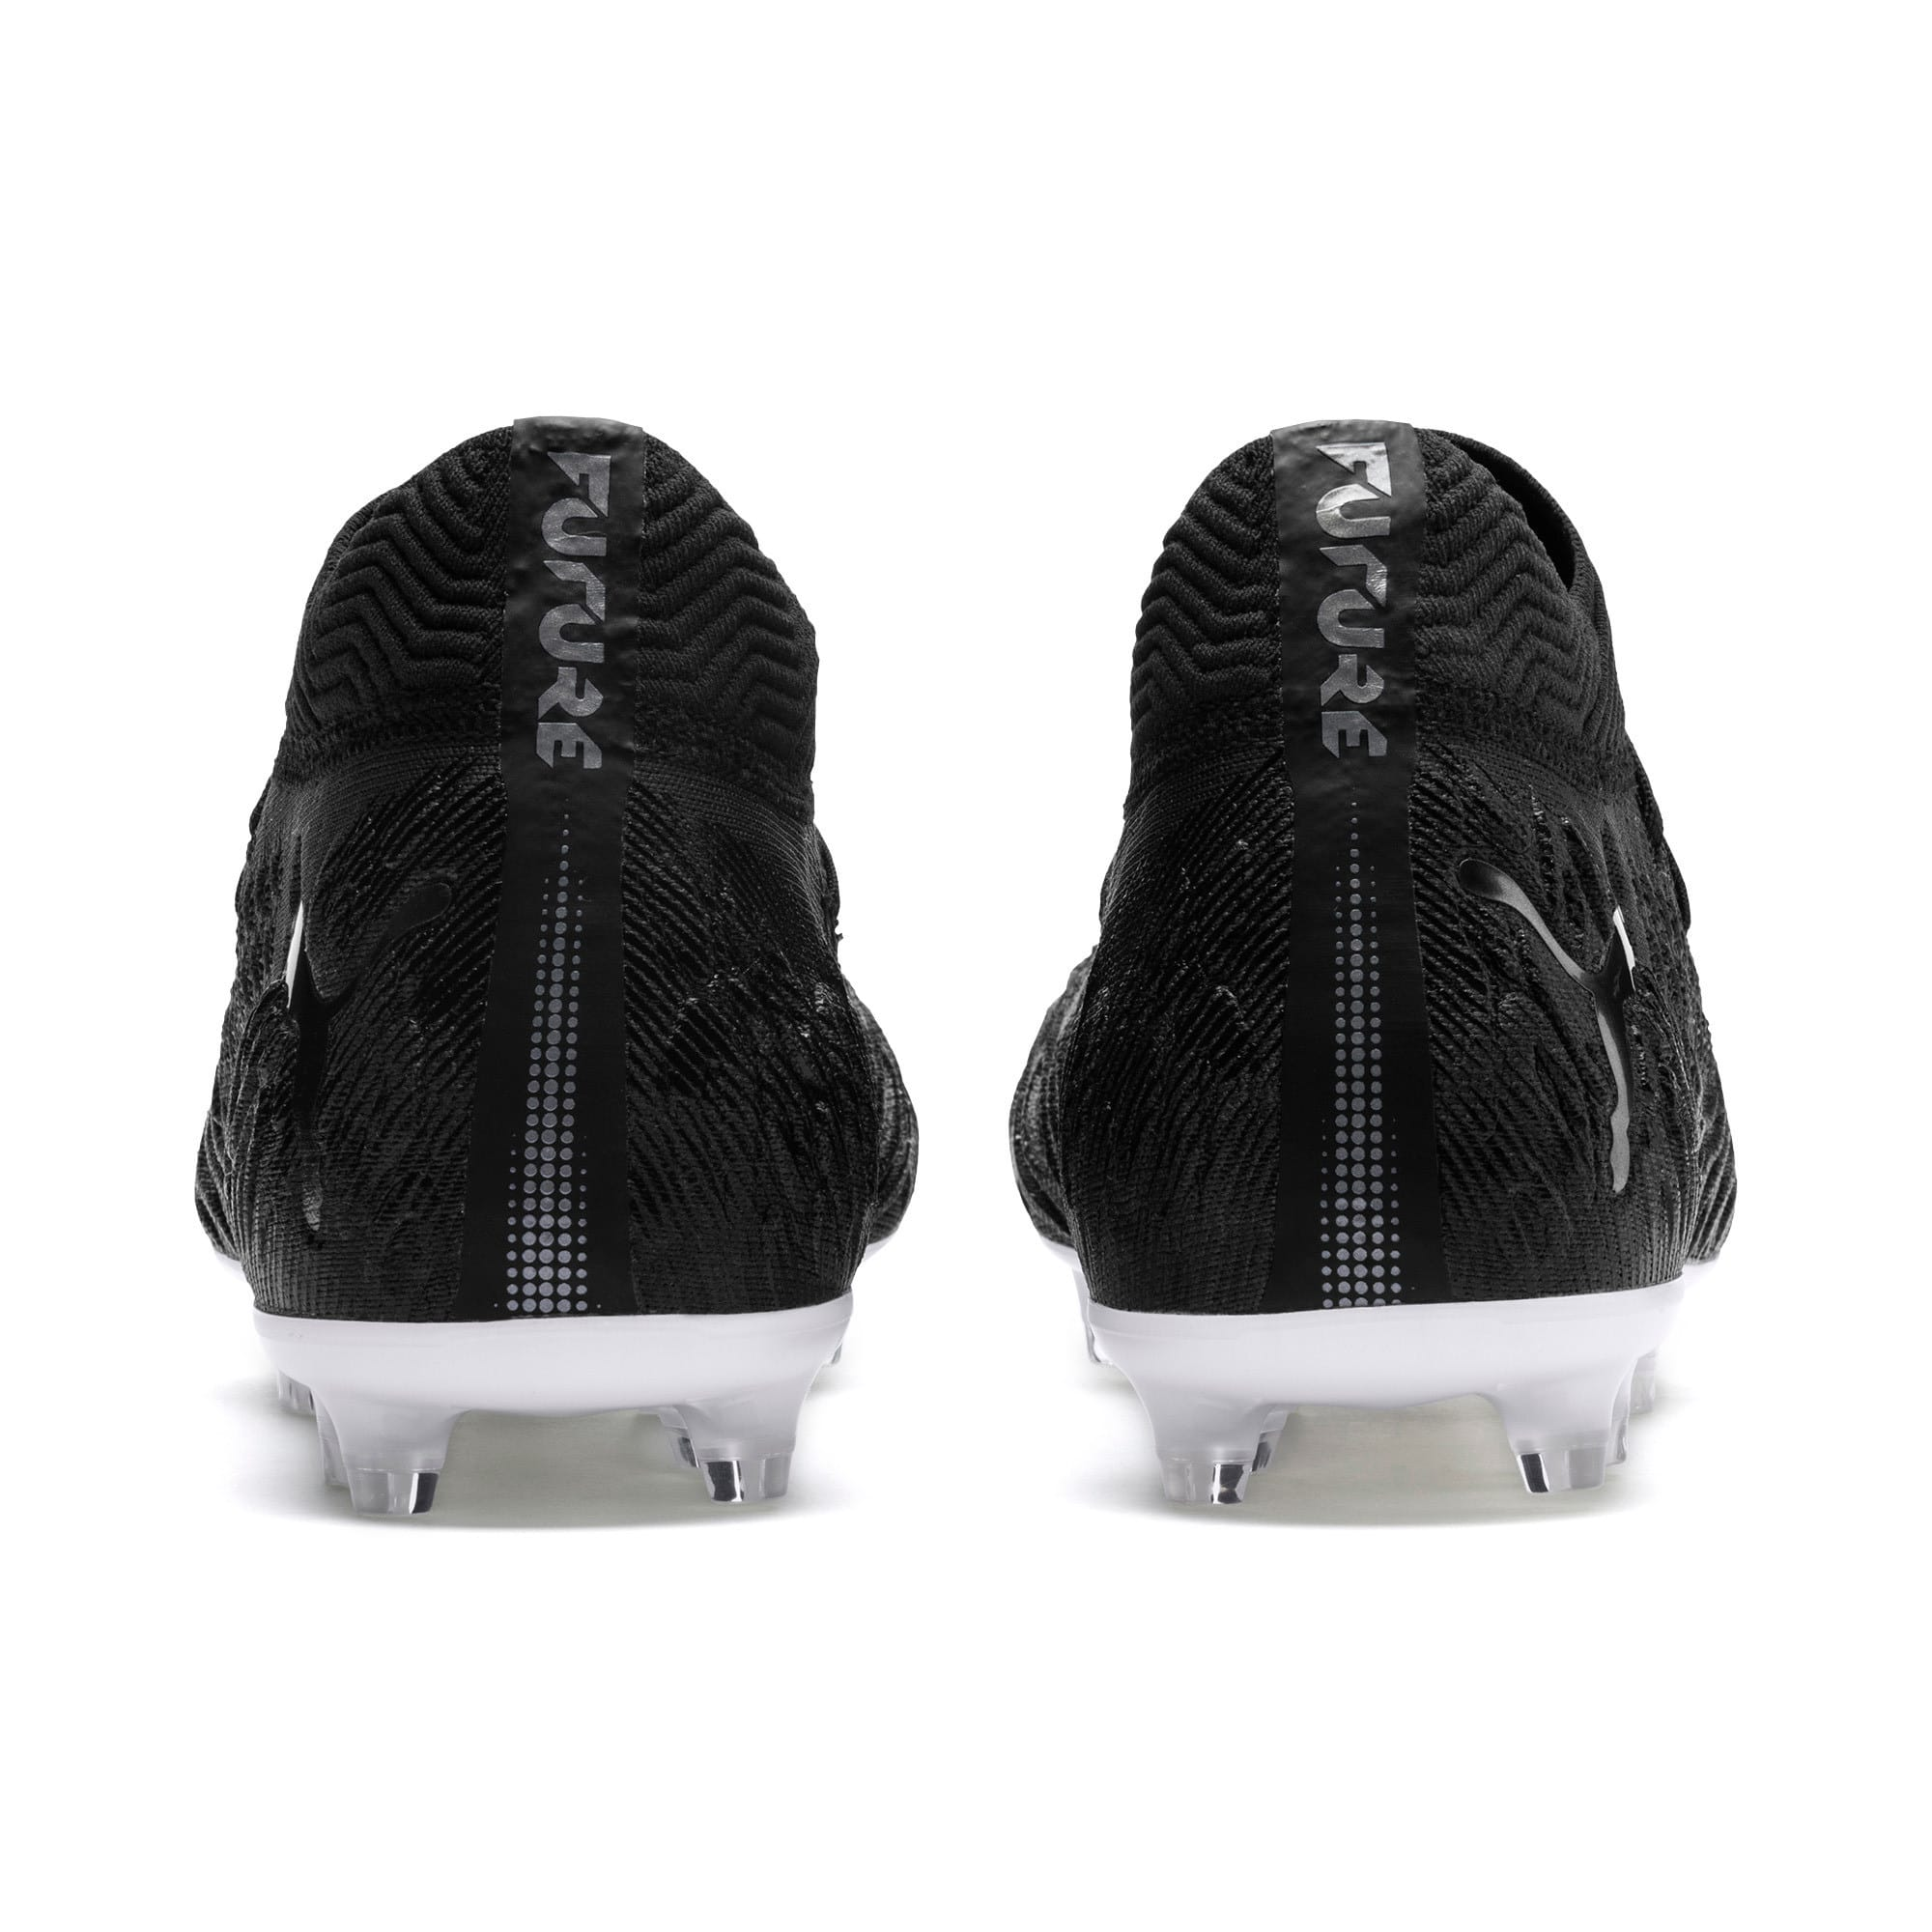 Thumbnail 3 of FUTURE 19.1 NETFIT FG/AG Men's Soccer Cleats, Black-Black-White, medium